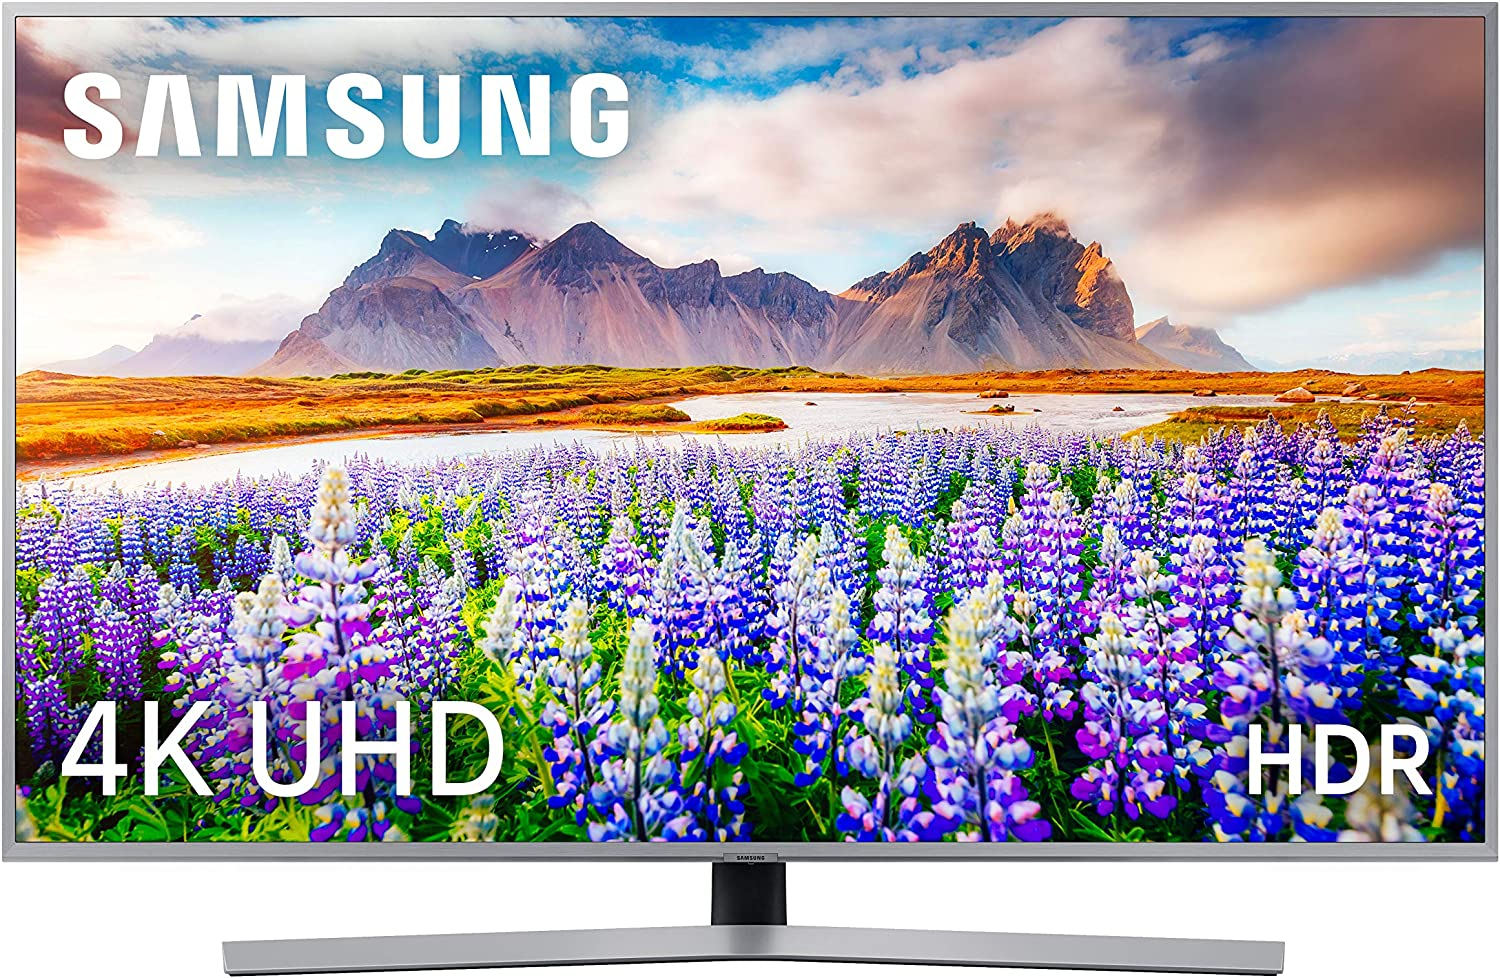 Samsung 4K UHD 2019 55RU7475 [serie RU7400], Smart Tv, 1, Multicolor: Amazon.es: Electrónica